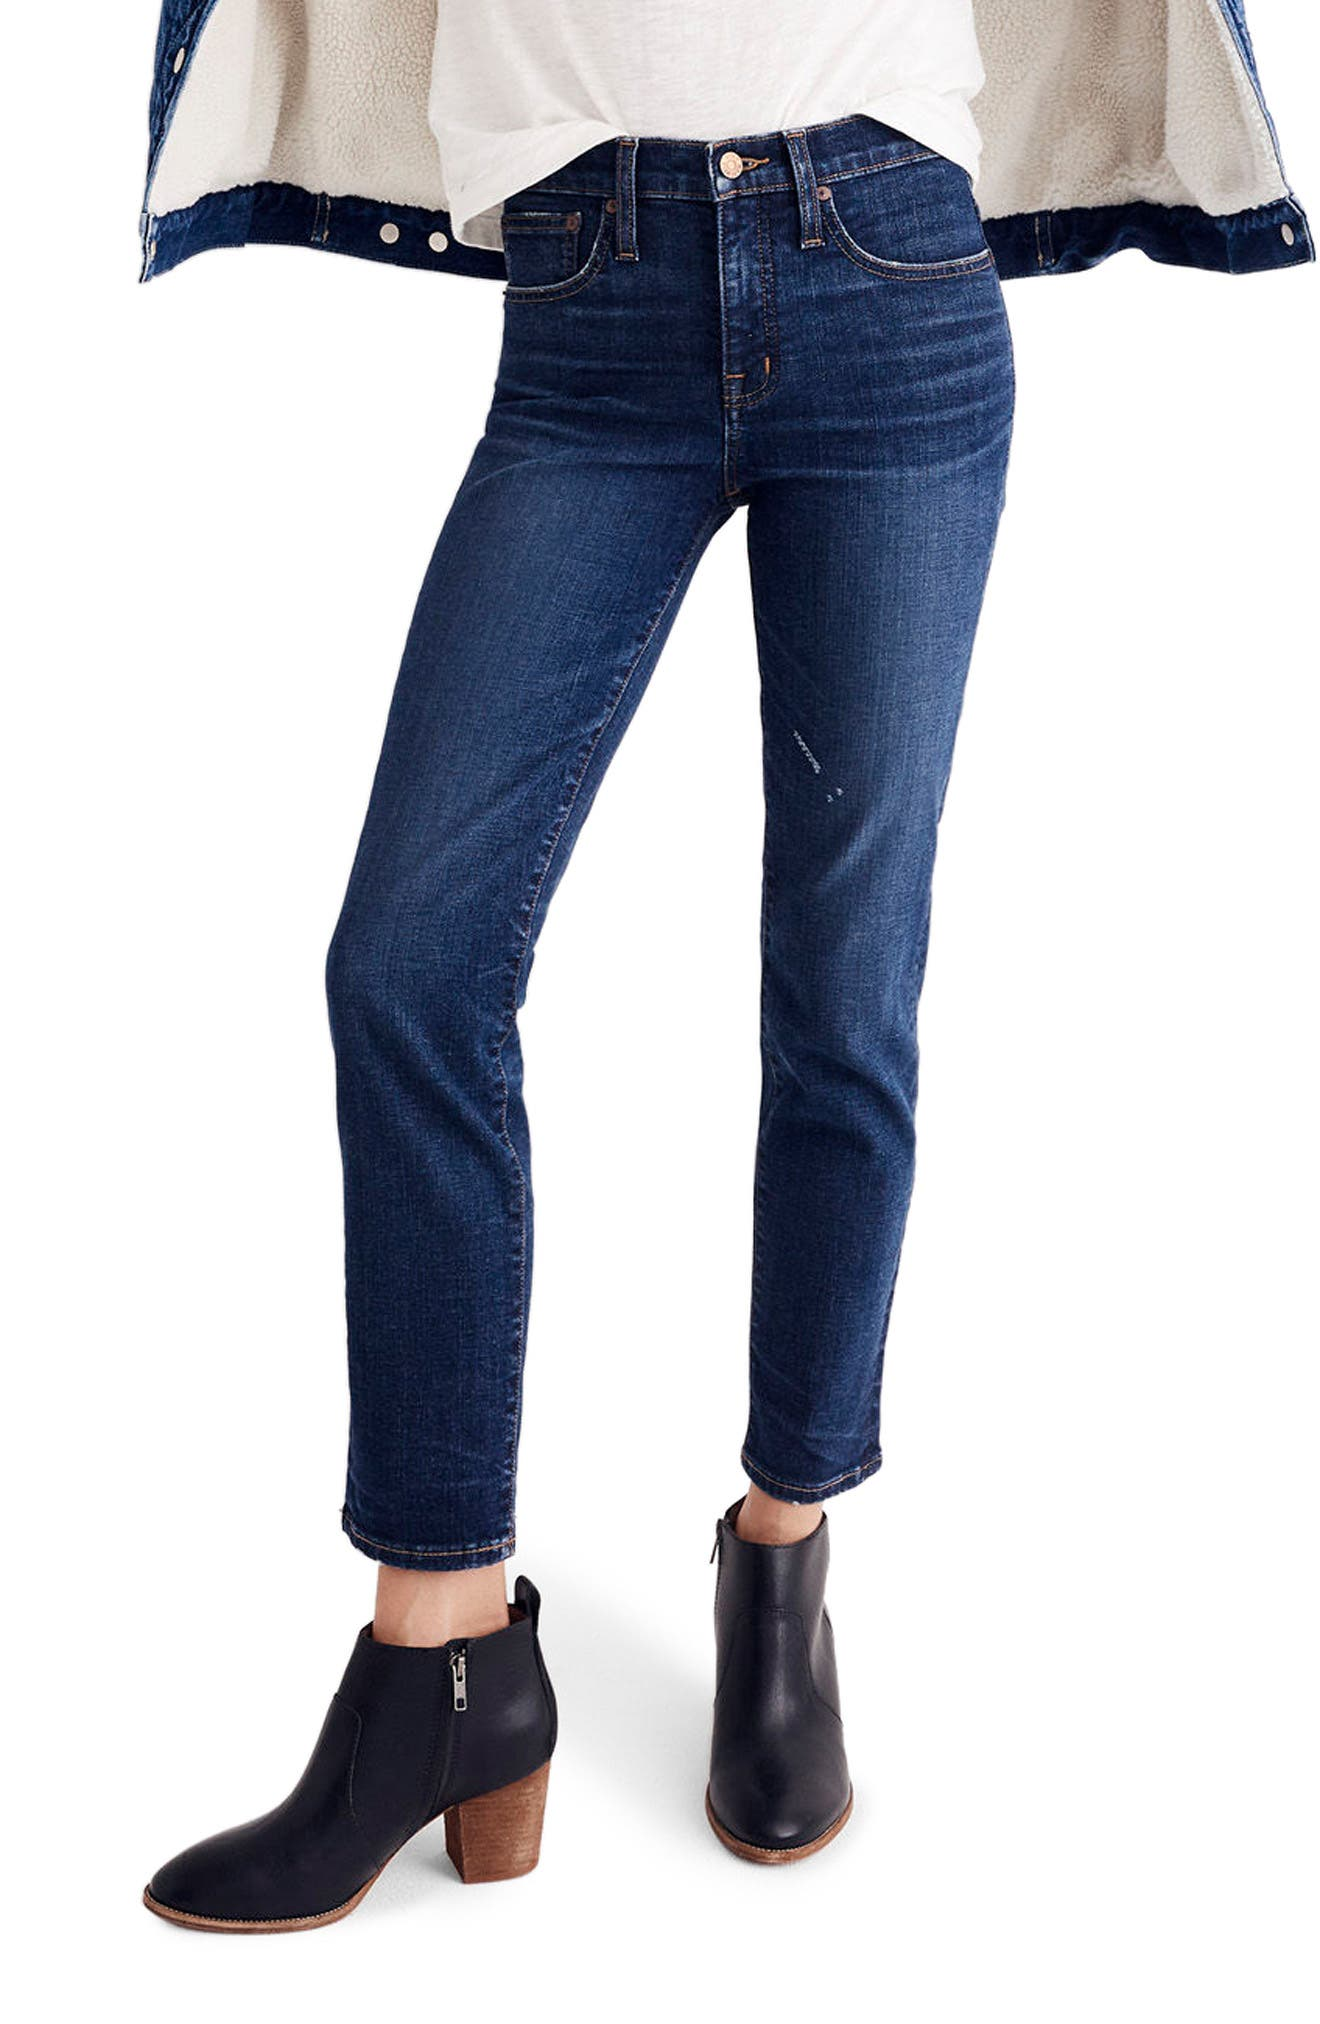 Alternate Image 1 Selected - Madewell High Waist Slim Straight Leg Jeans (William Wash)